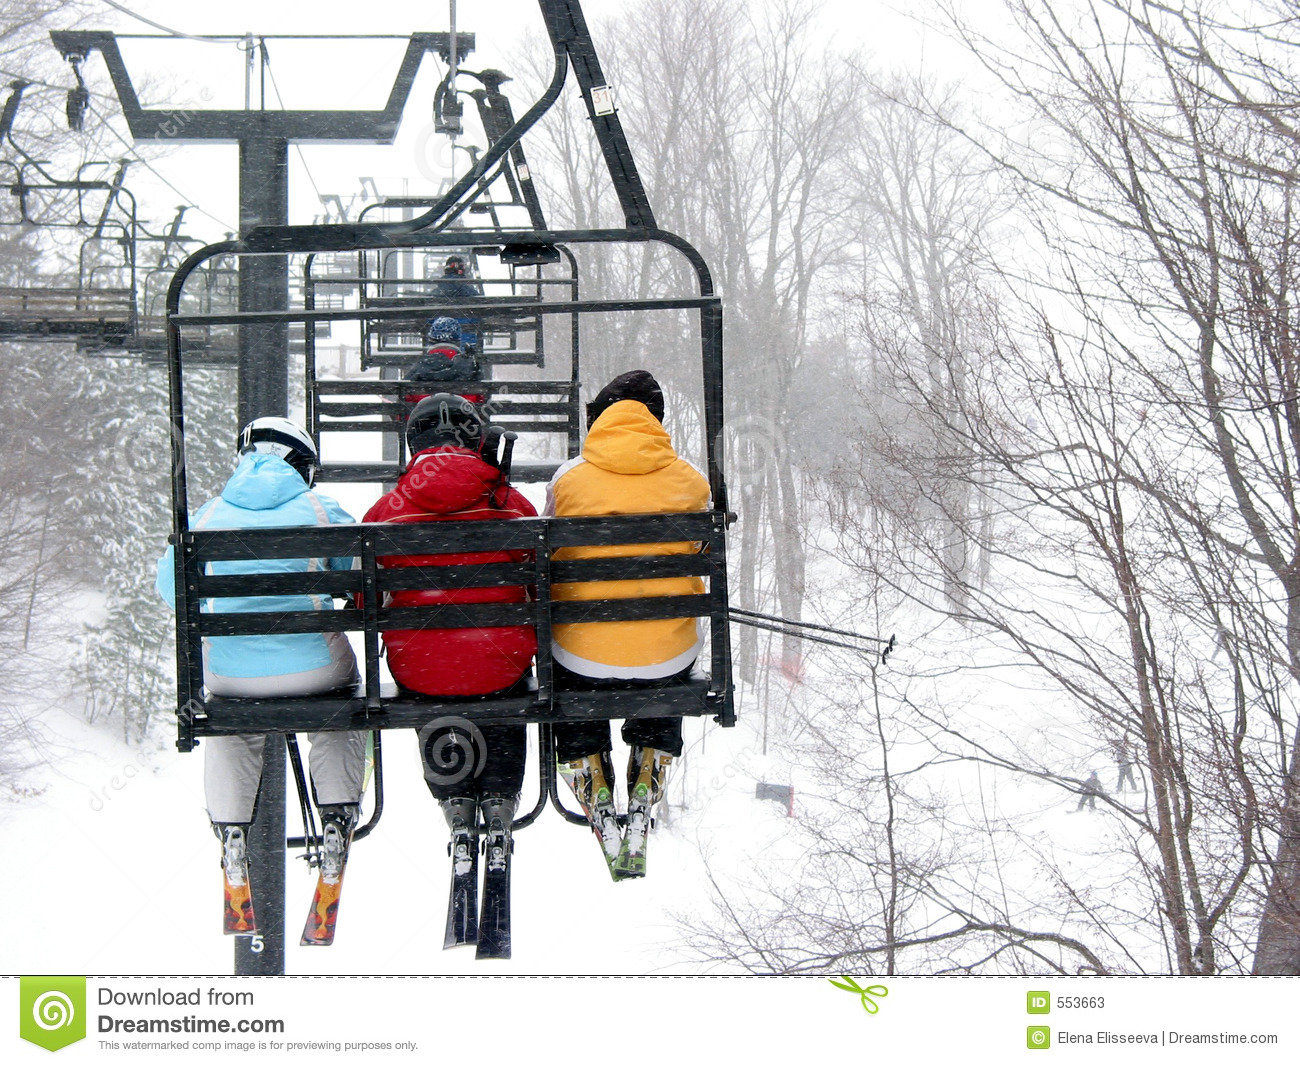 Definition of Chairlift by Merriam-Webster